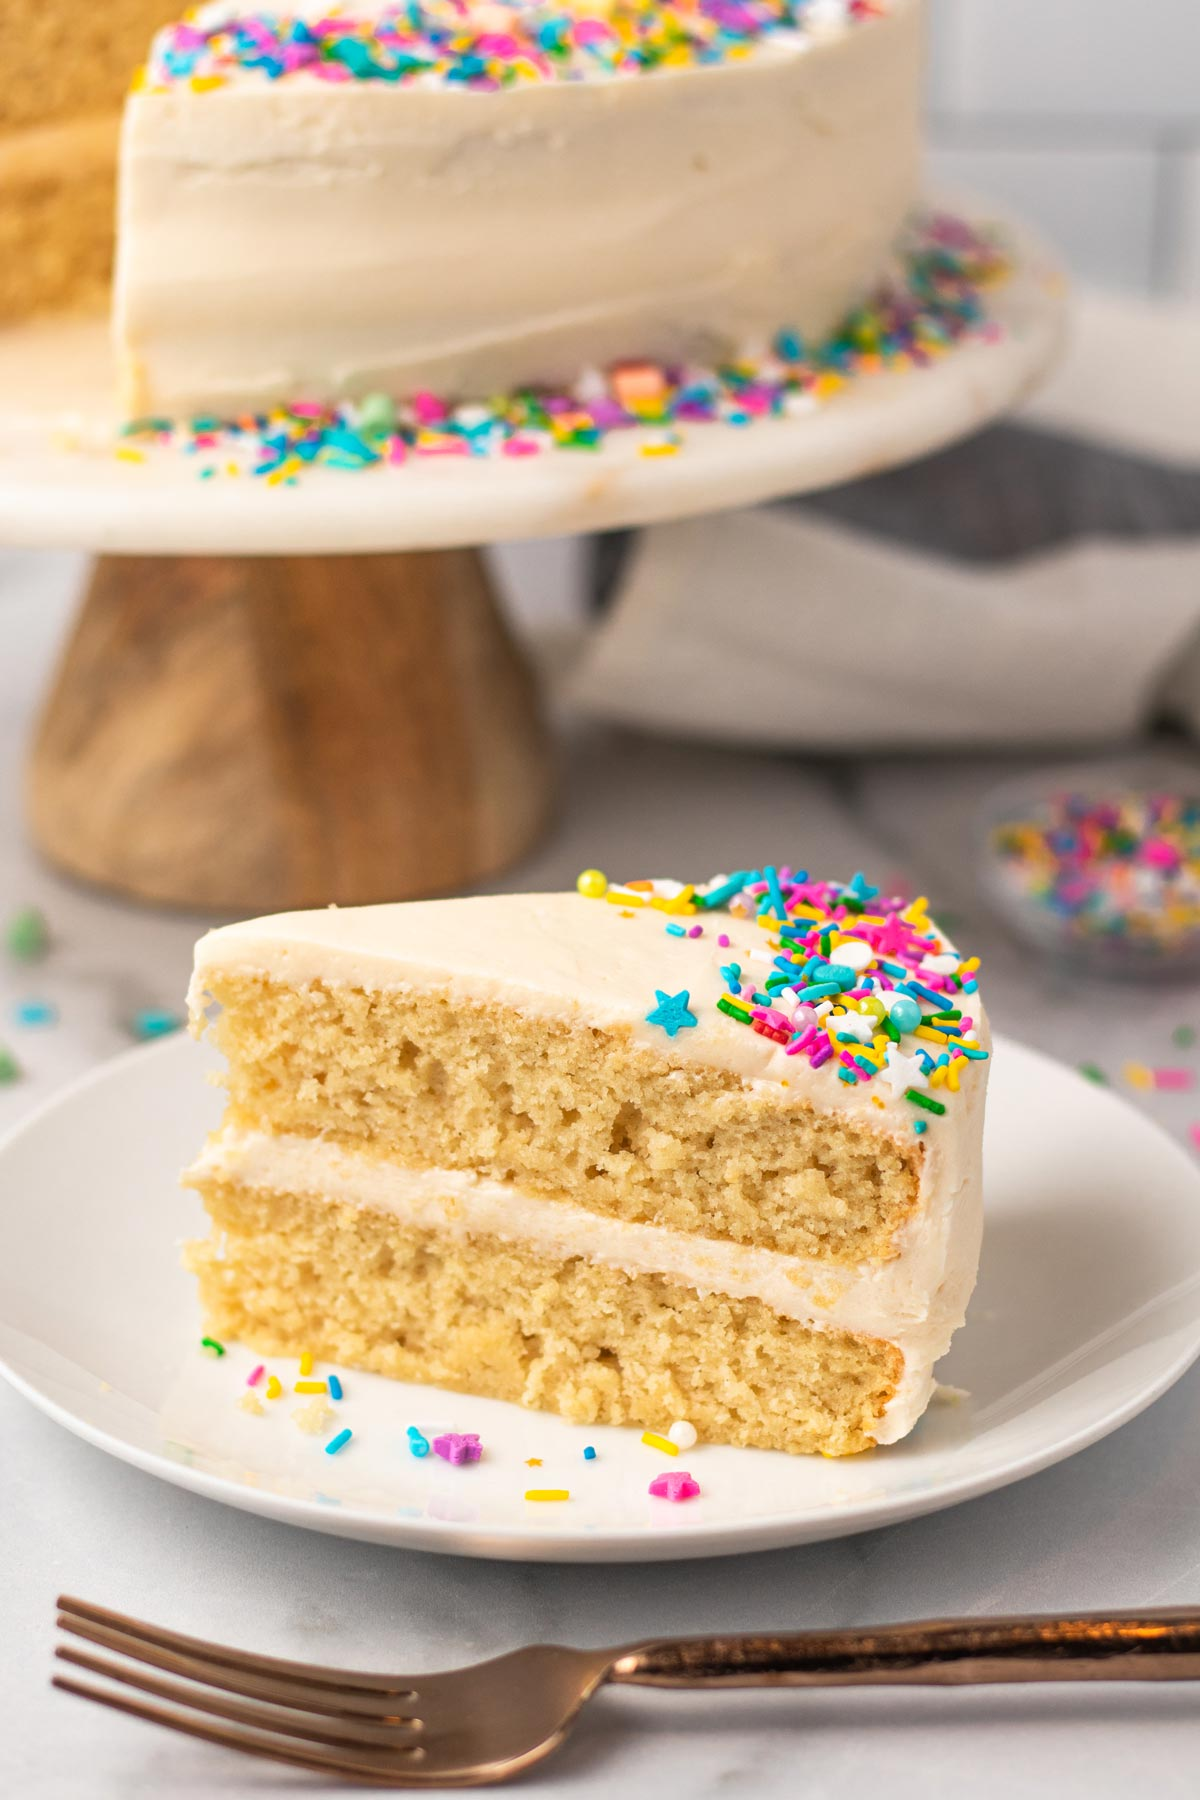 slice of vegan vanilla cake in front of the whole cake on a cake stand in the background